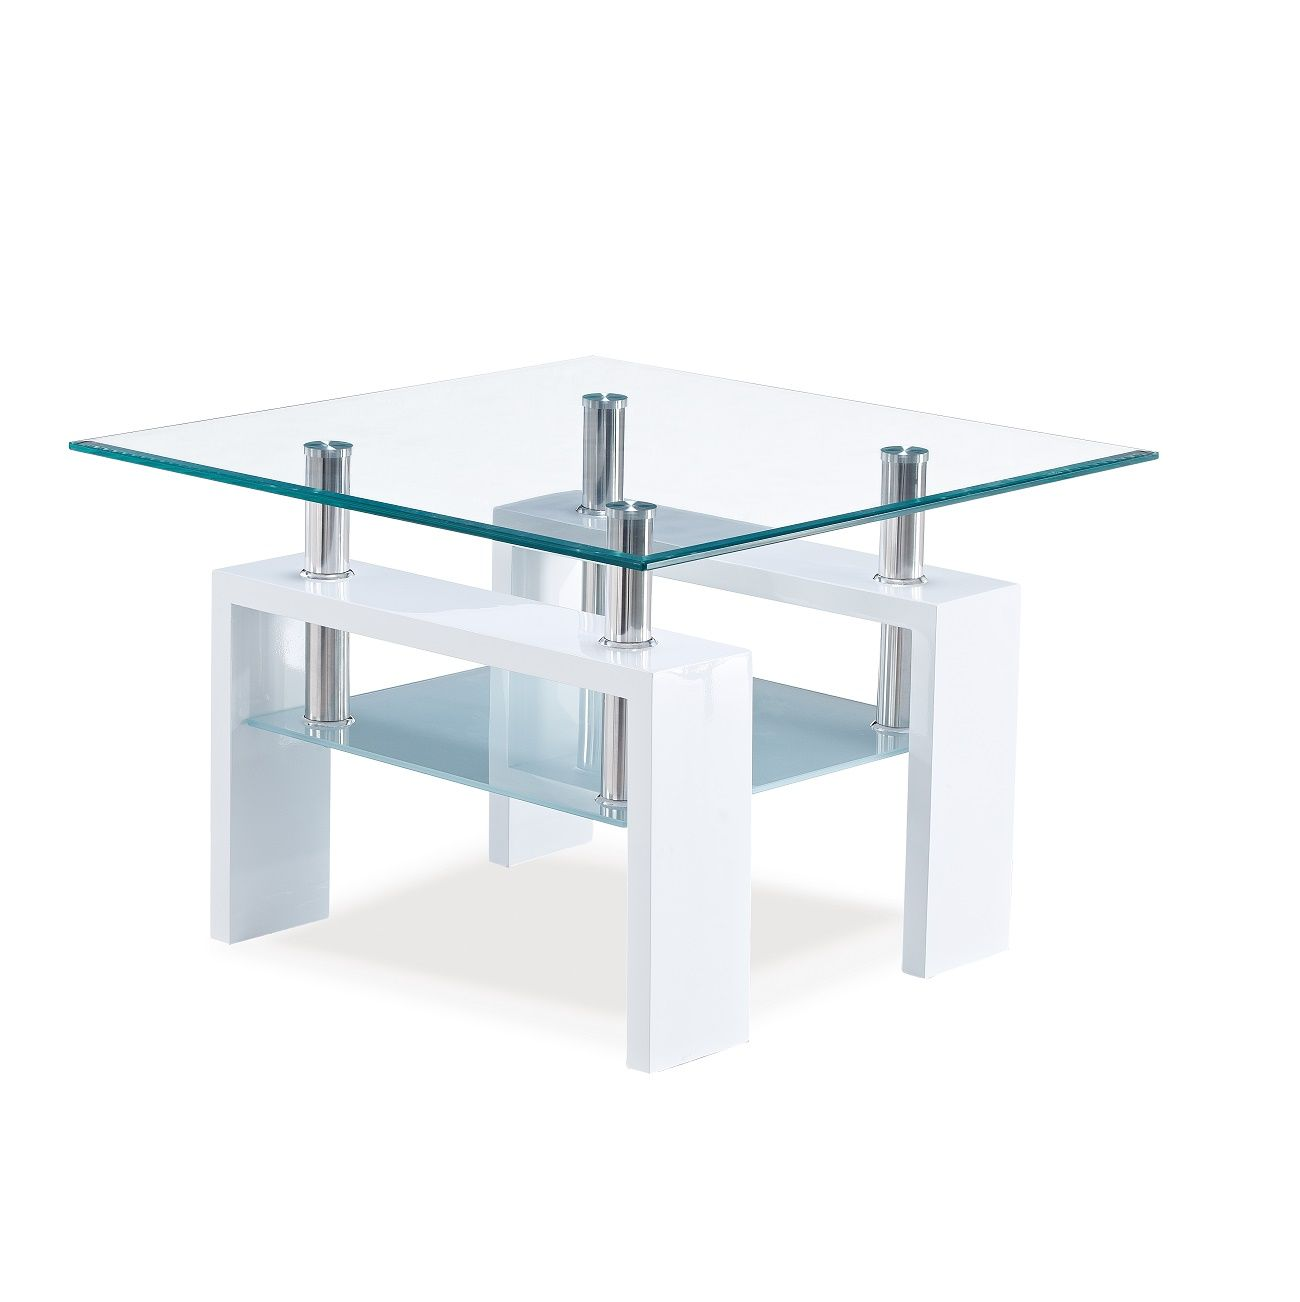 t end table this contemporary end table boast a sleek design  - t end table this contemporary end table boast a sleek design with glossywhite legs and